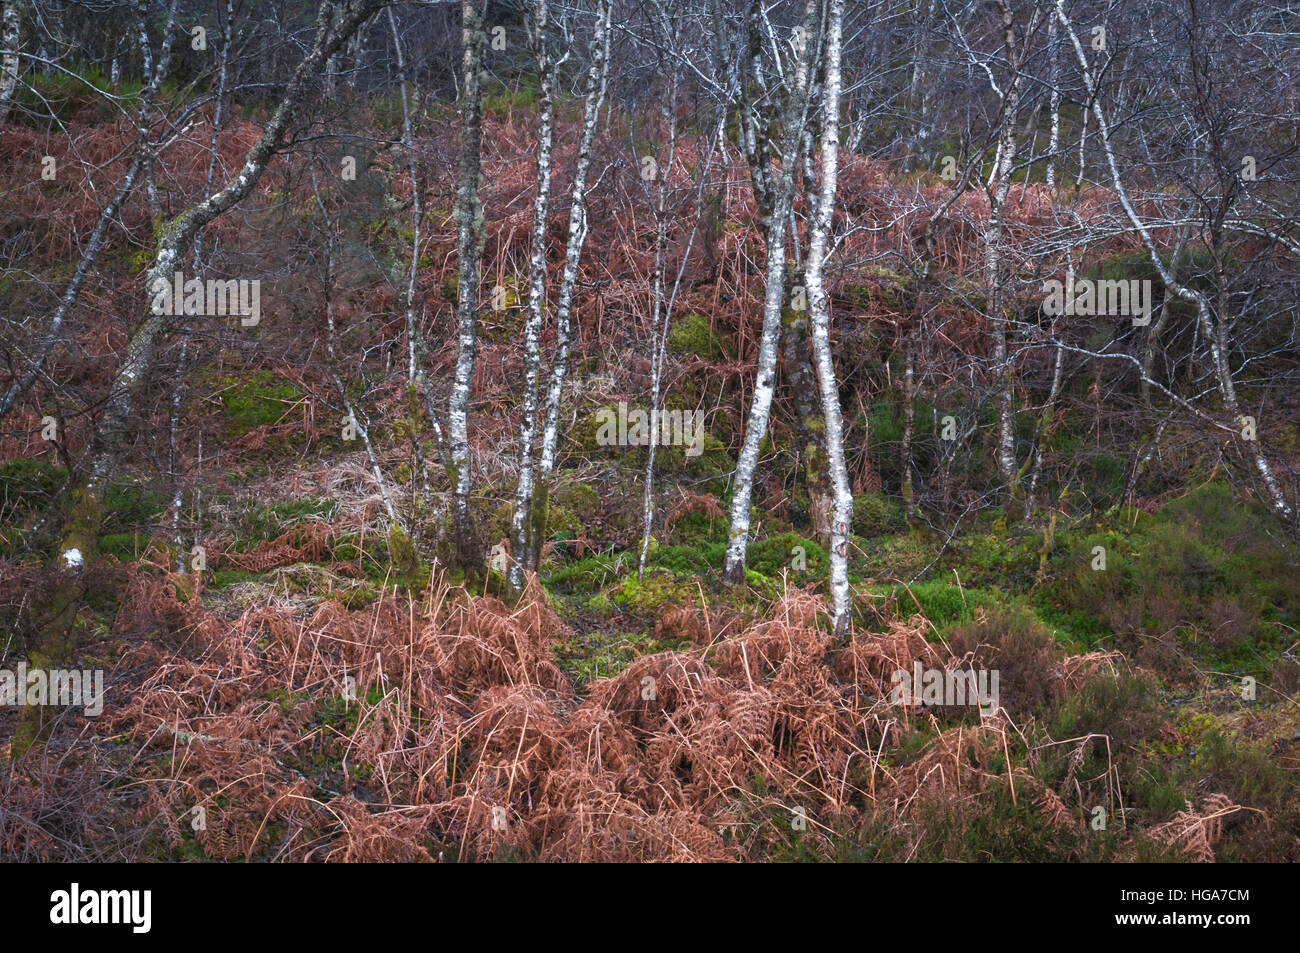 An winter landscape image of Silver birch Trees, Betula pendula, and dead bracken. Stock Photo